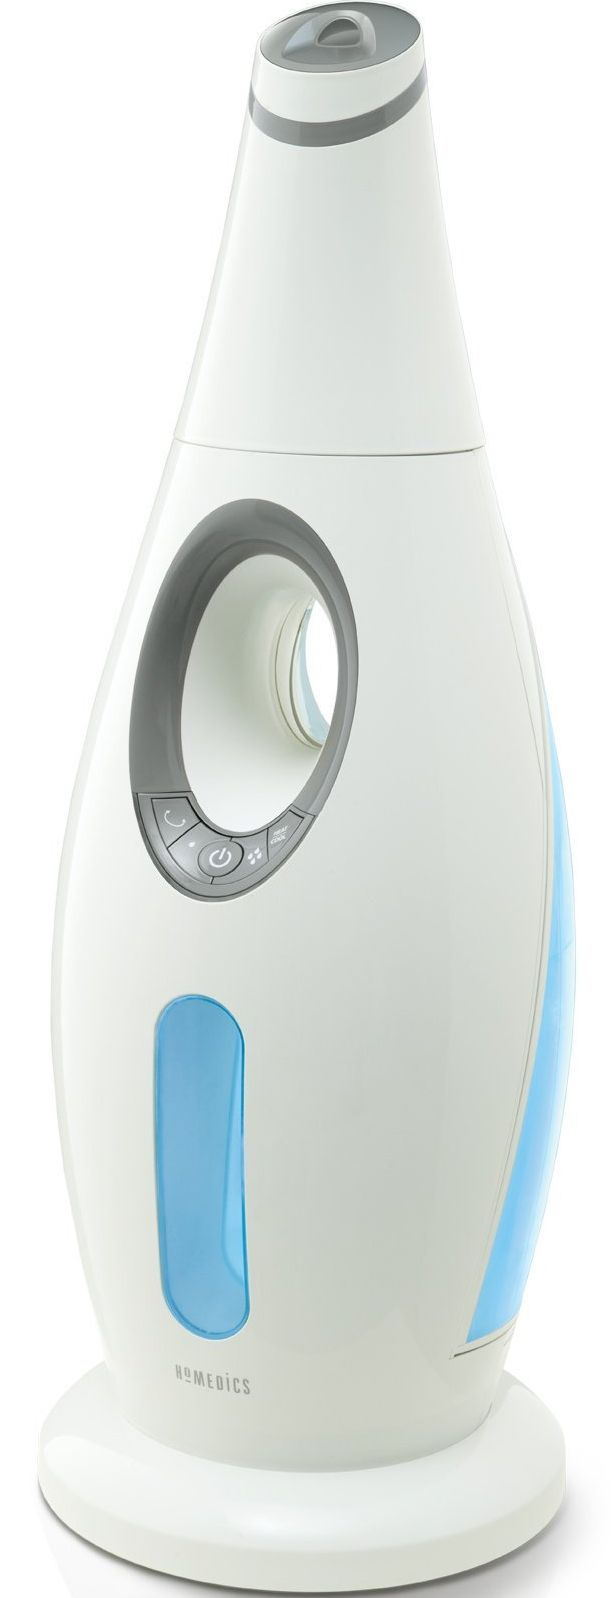 Cool/warm Mist Ultrasonic Humidifier